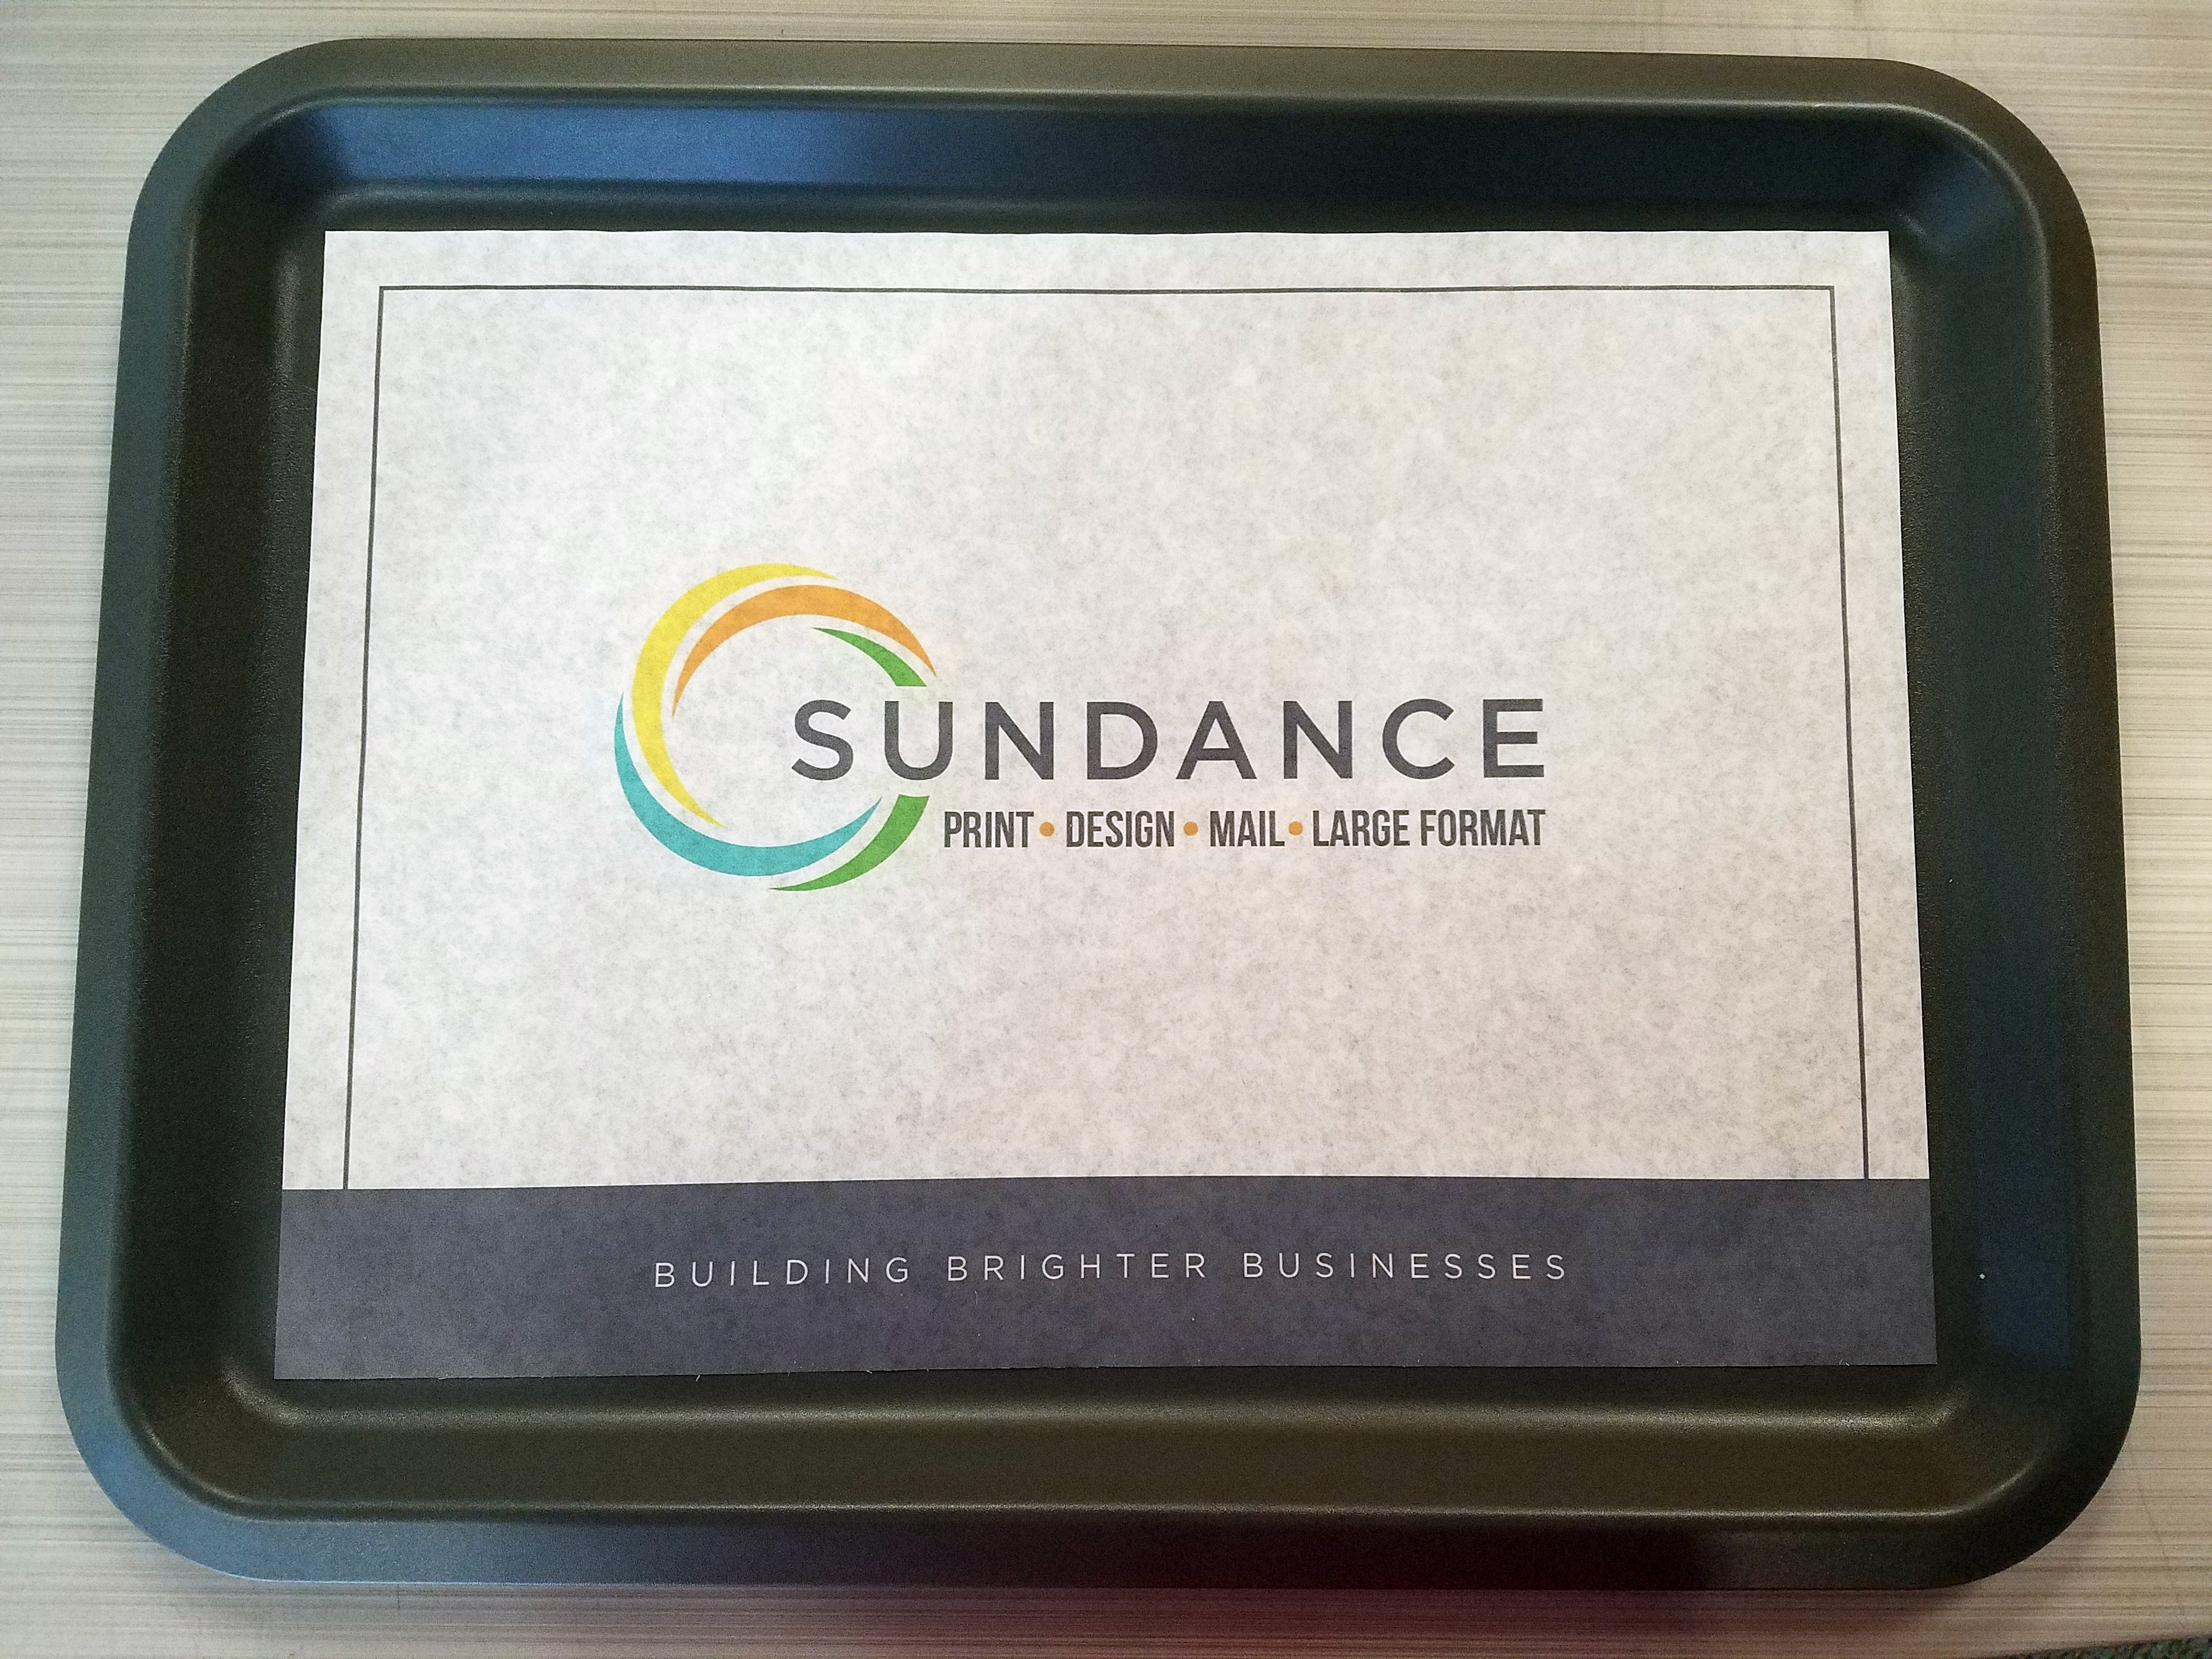 SunDance Makes FDA Printing Easy